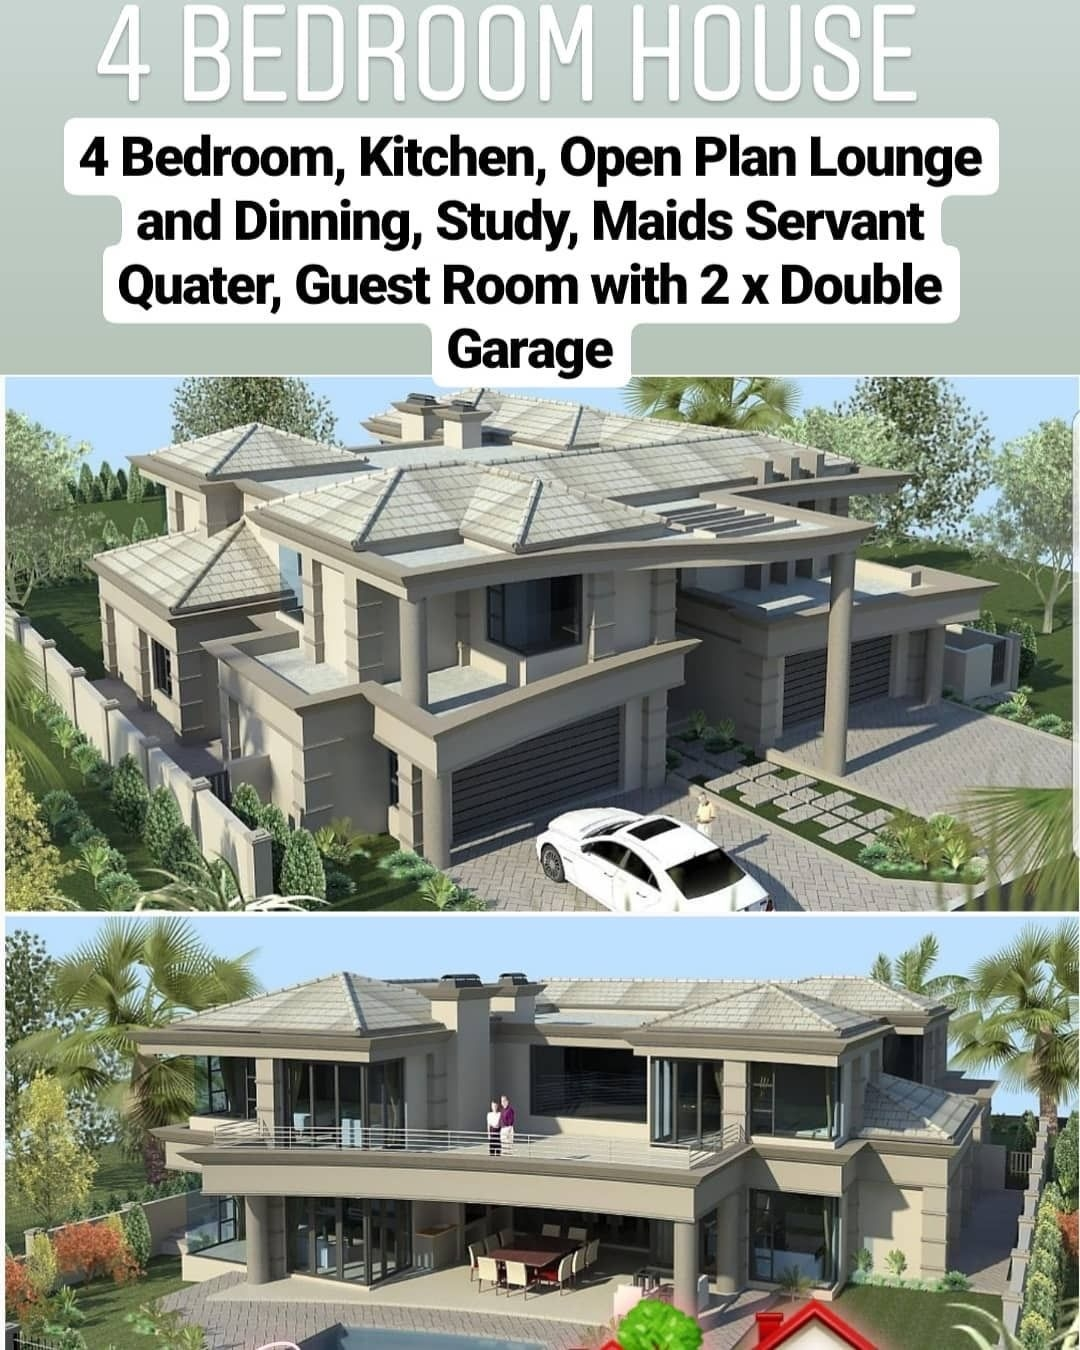 a007b57afac38d77ea7a af79 on Modern House Designs Pictures Gallery id=1005757